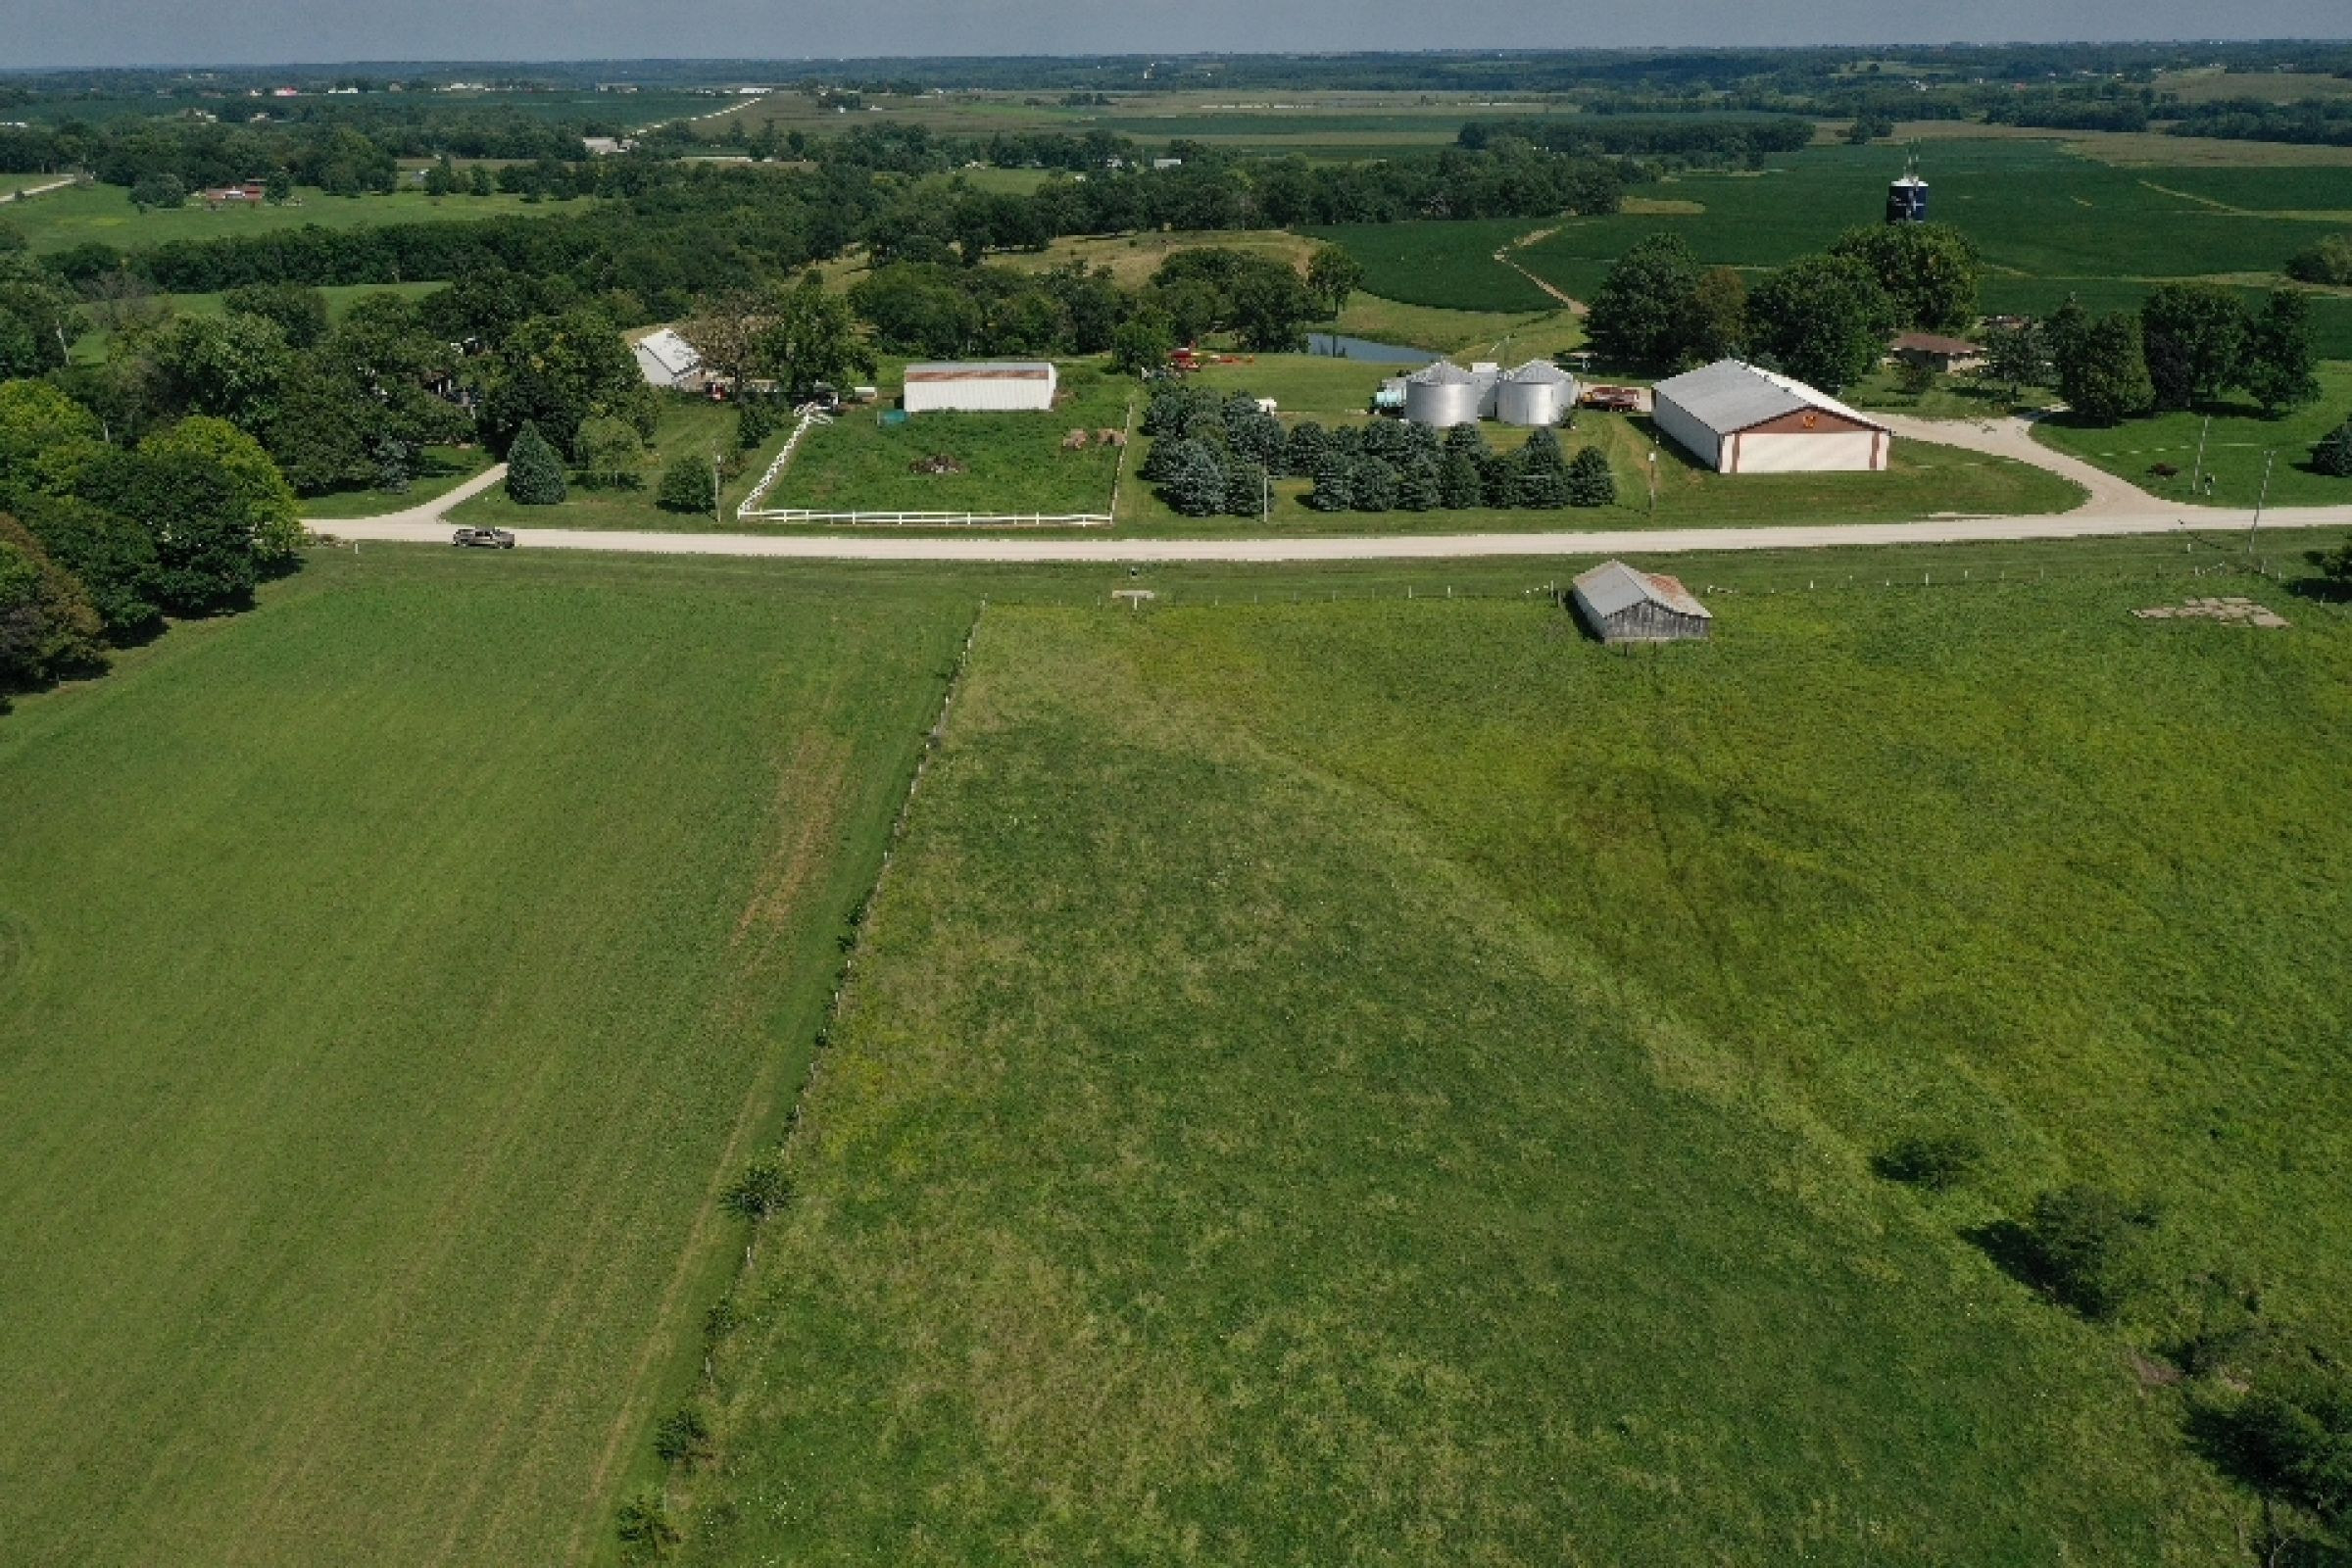 residential-land-warren-county-iowa-29-acres-listing-number-15120-3-2020-08-20-195121.jpg